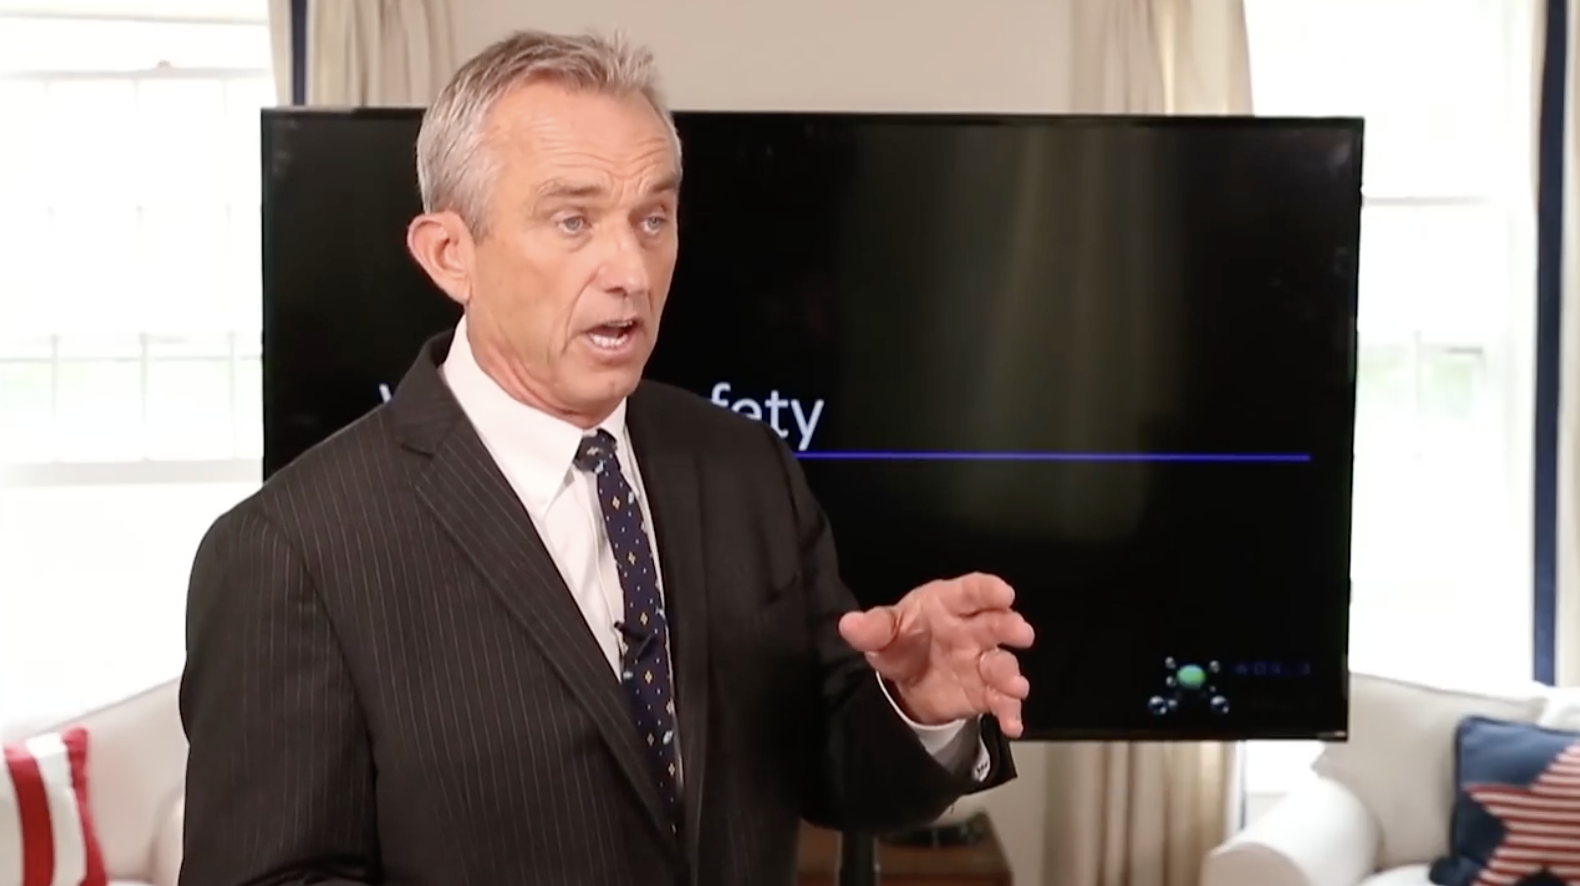 Image: Robert Kennedy Jr. launches first lawsuit of thousands against Monsanto alleging herbicide Roundup causes non-Hodgkin's lymphoma